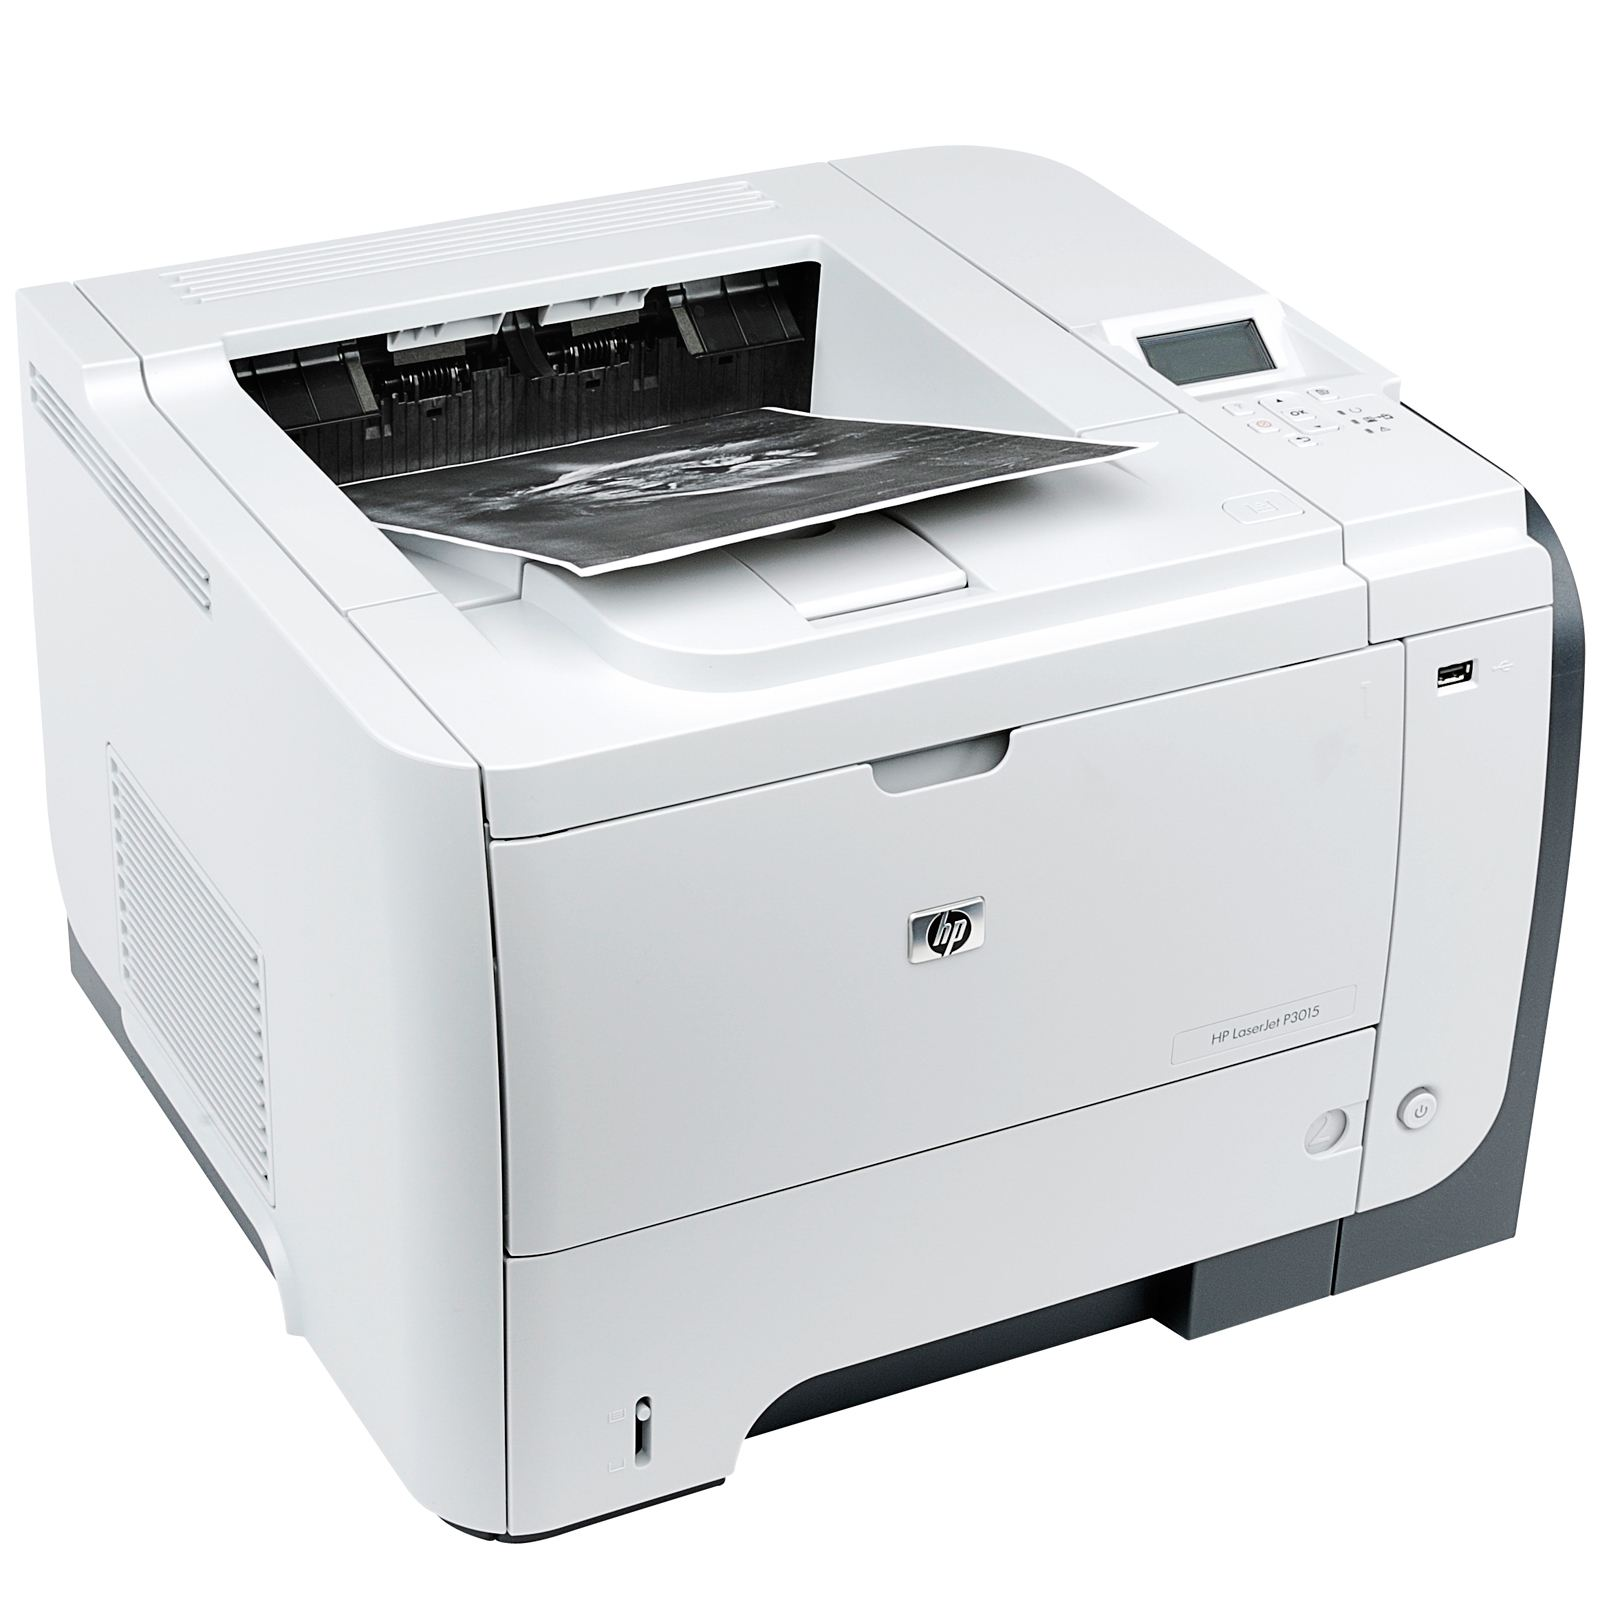 Samsung Printers HP + Samsung Combining the power of HP printing leadership in security, quality, and reliability with the professional performance of the Samsung brand at great prices to offer unprecedented print innovations and performance for your business.